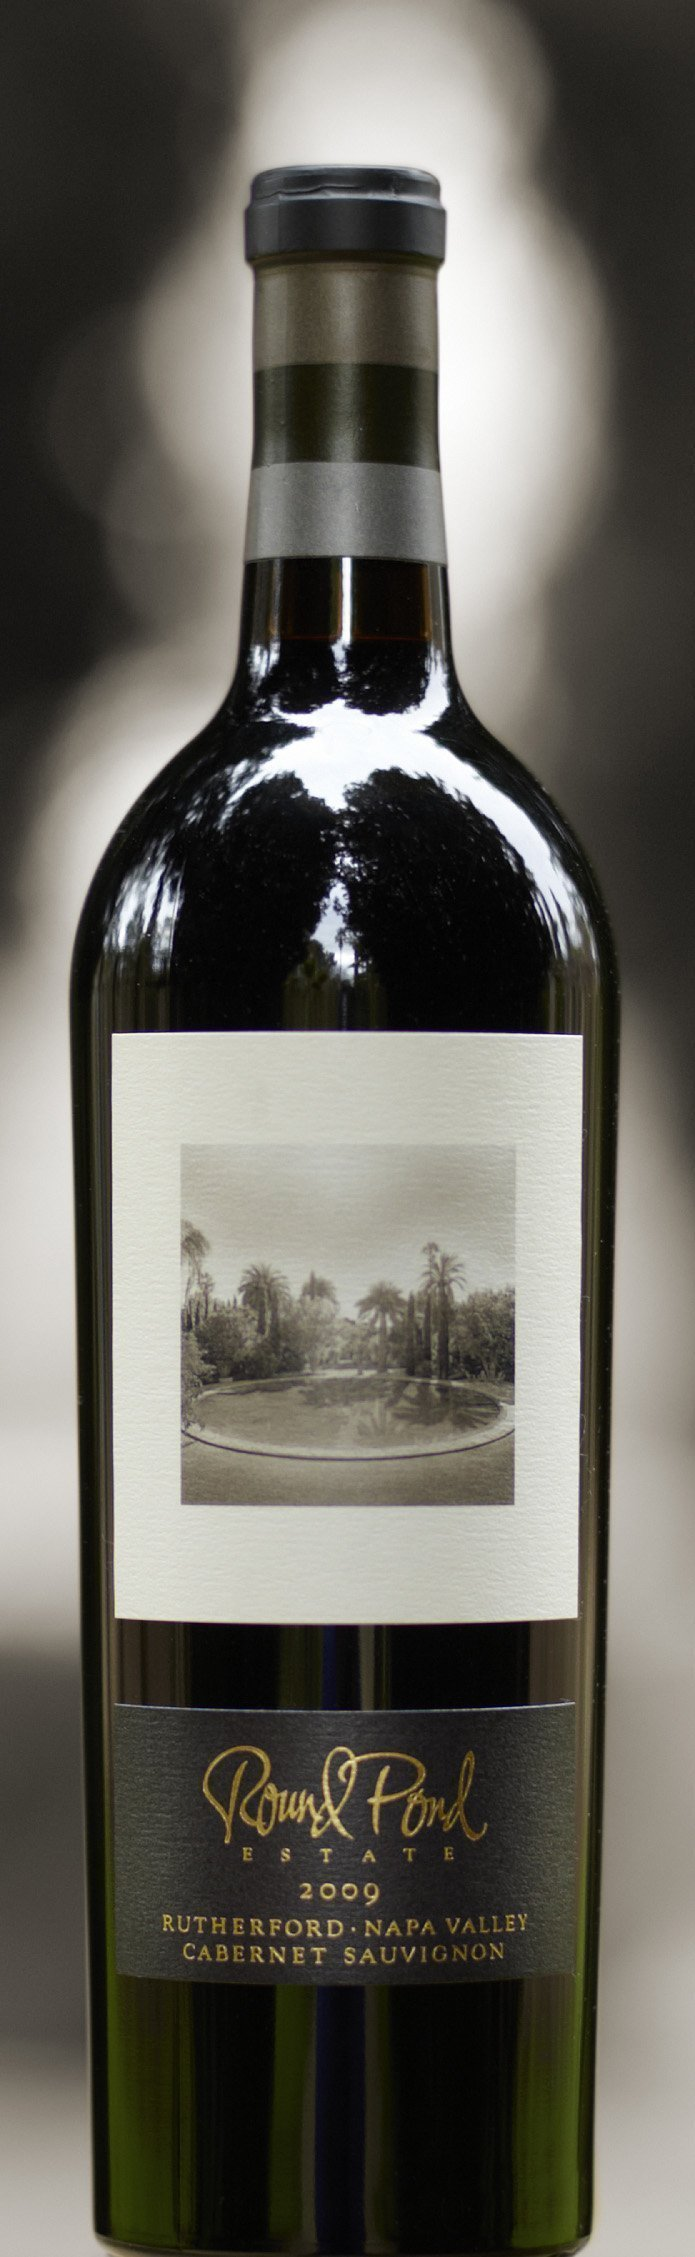 2009 Round Pond Cabernet Sauvignon Napa Valley Rutherford